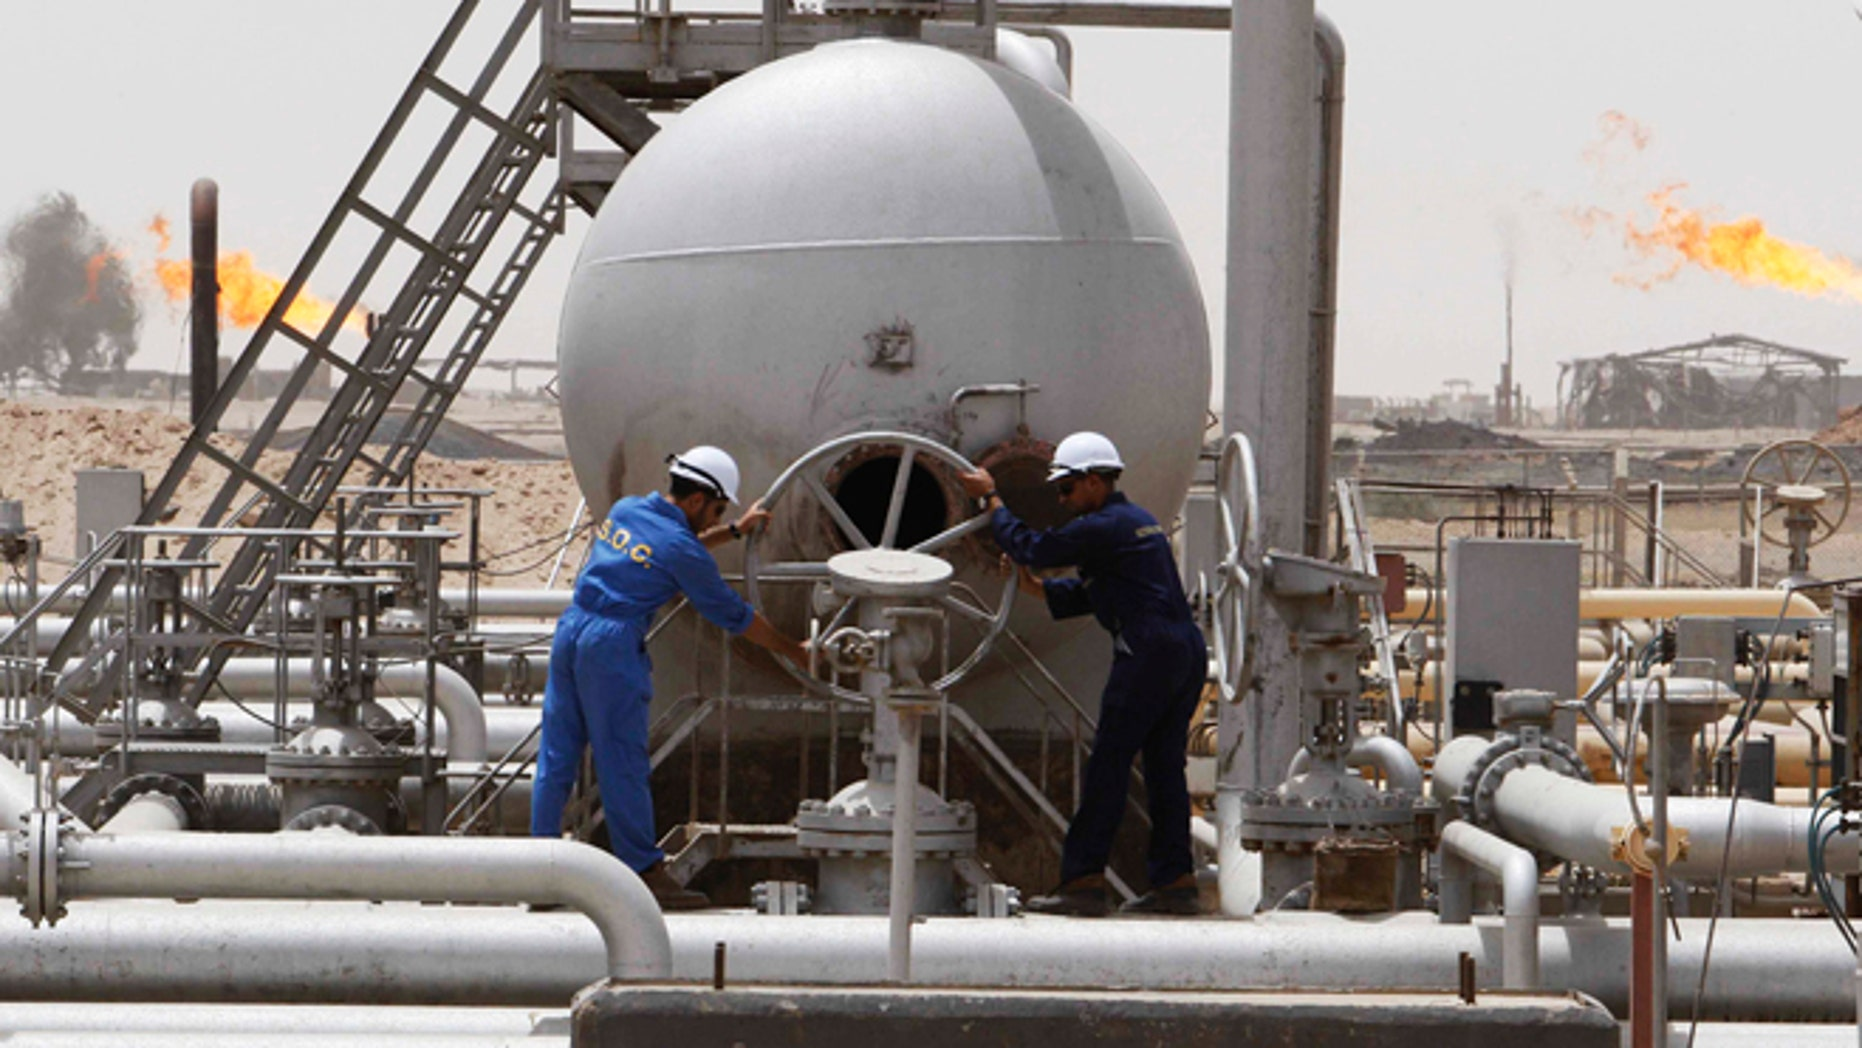 FILE 2010: Workers adjust a valve at the Rumaila oil field in Basra Province. A top Iraqi diplomat urged others to 'use the weapon of oil' against the U.S. because of its alliance with Israel.